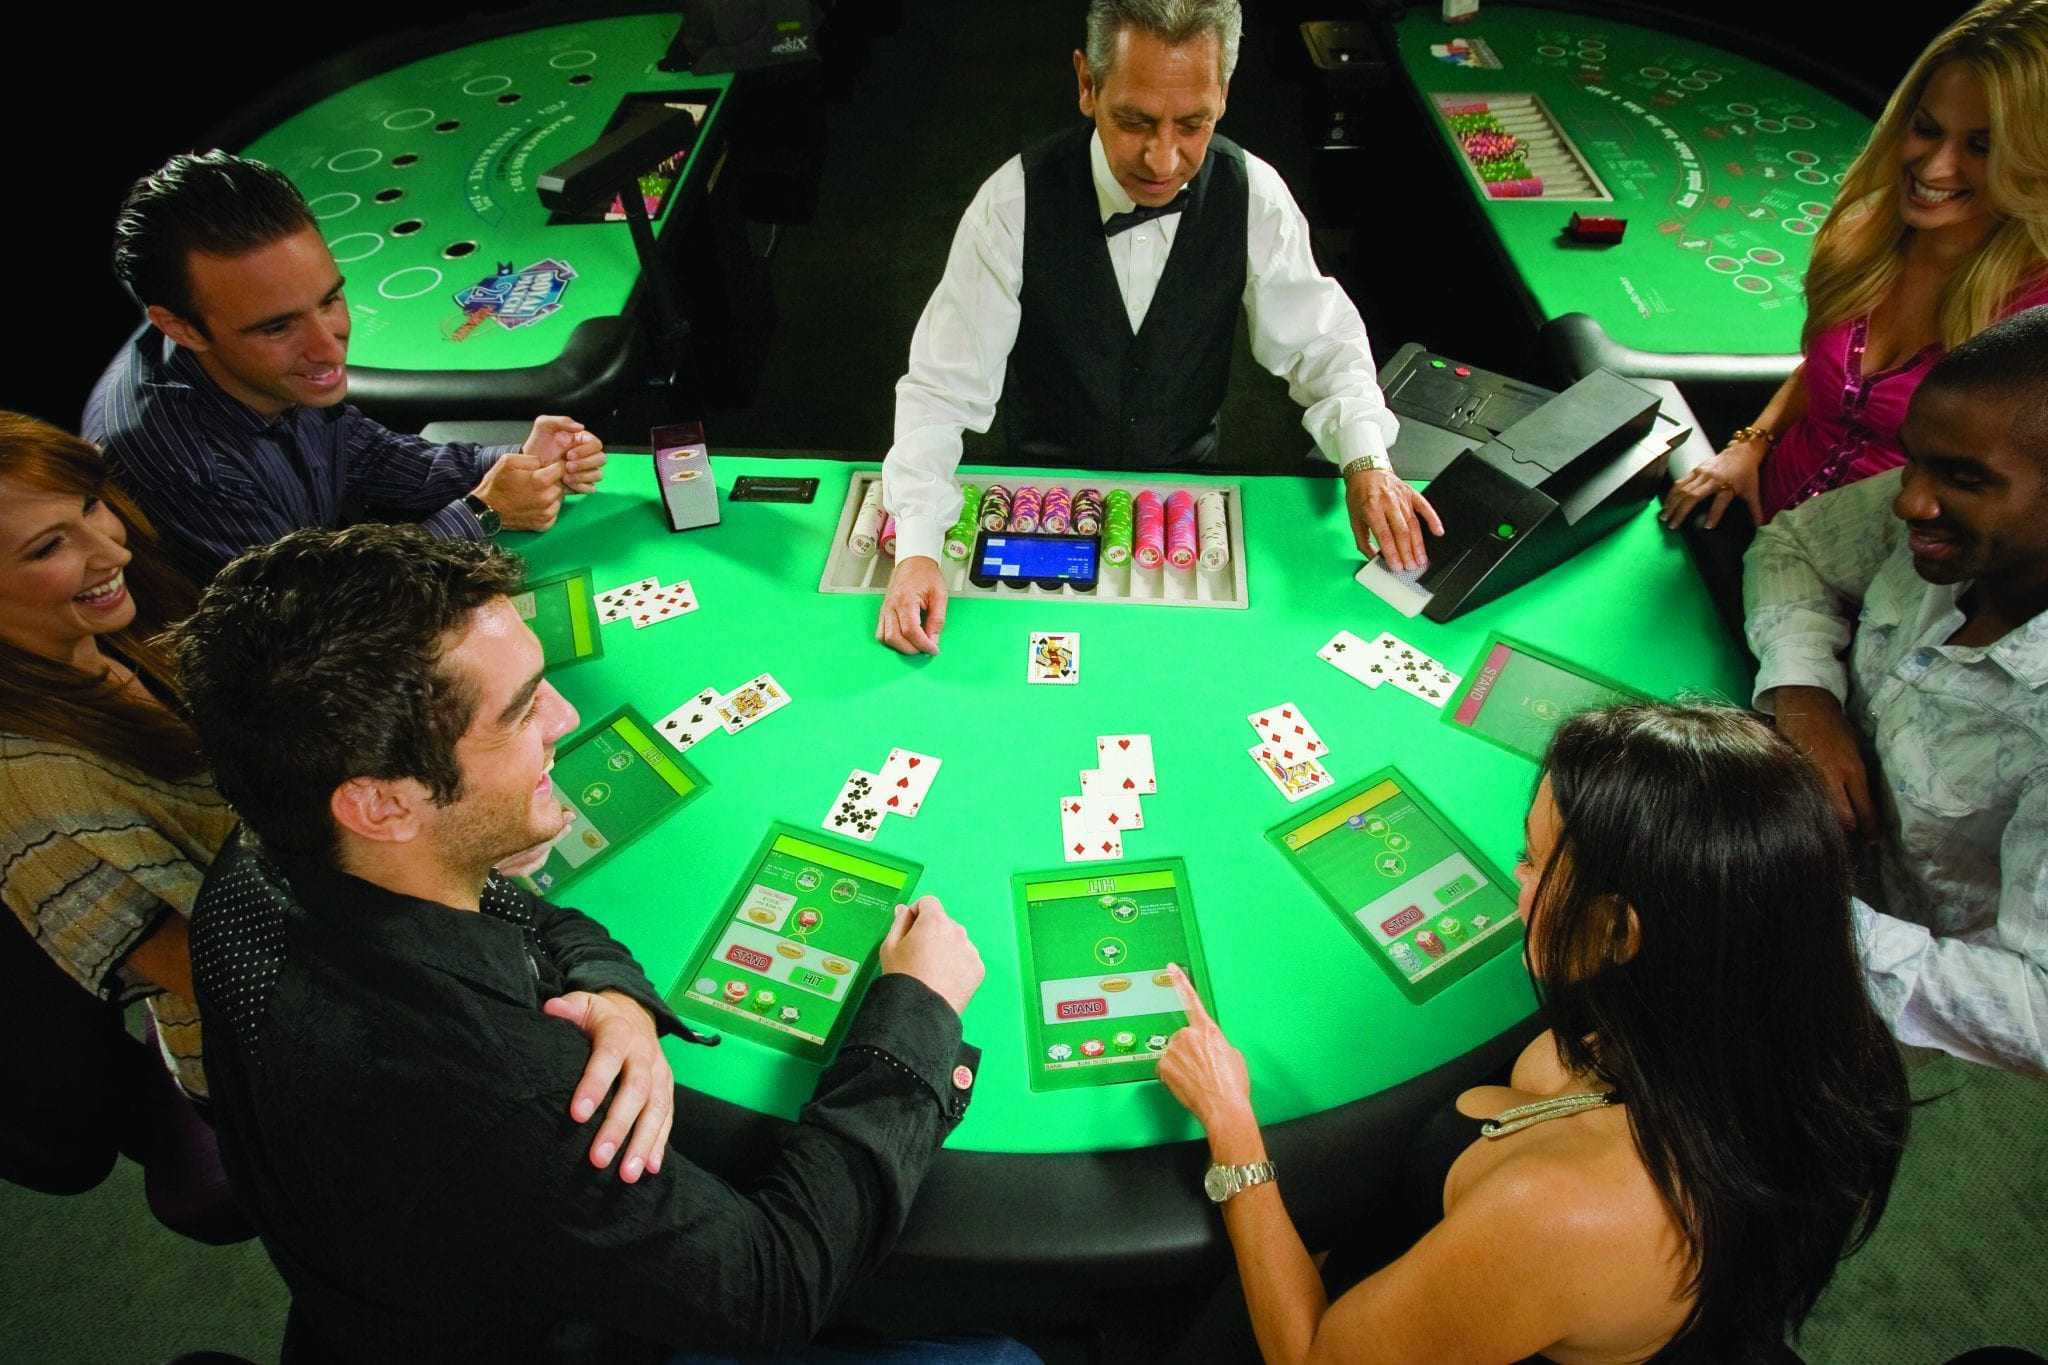 People playing Blackjack at a Zytronic technology interactive casino table